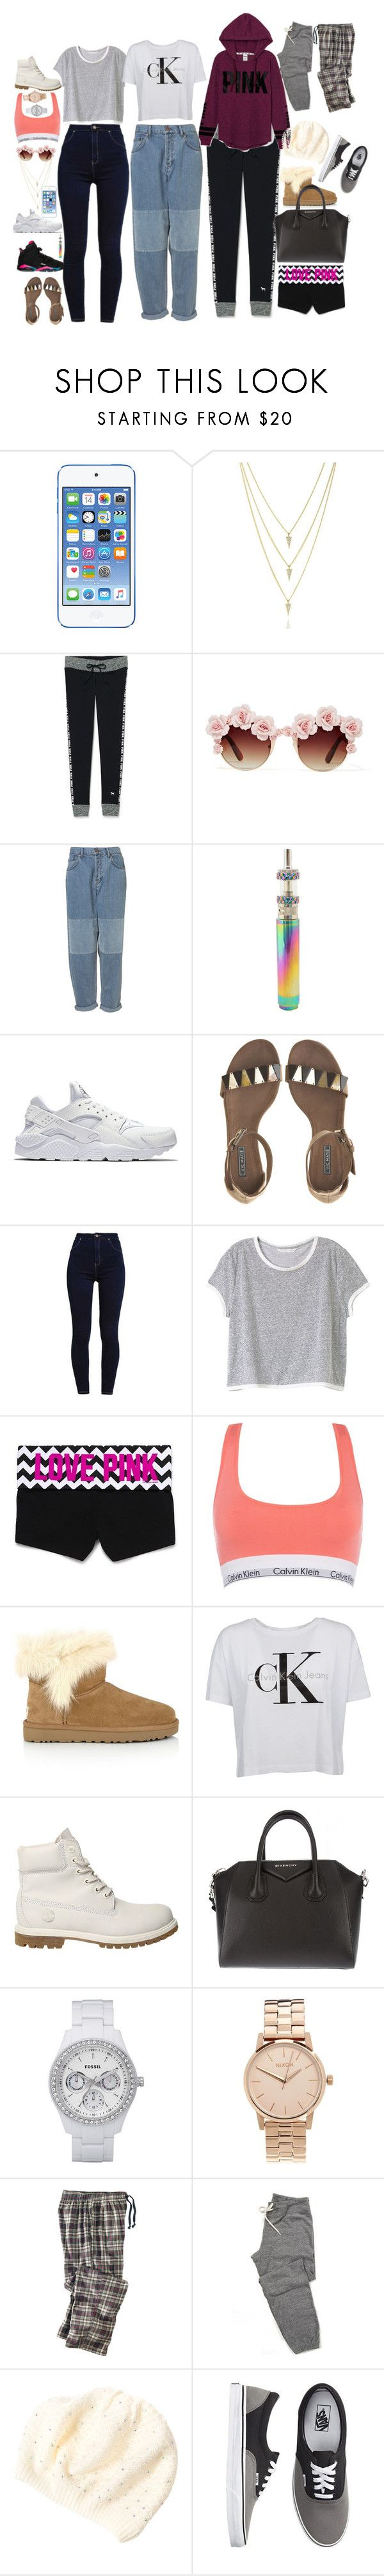 """""""What I feel like buying today"""" by selinalindroth ❤ liked on Polyvore featuring Retrò, Victoria's Secret, Gasoline Glamour, NIKE, Vic Matié, Calvin Klein, UGG, Timberland, Givenchy and FOSSIL"""